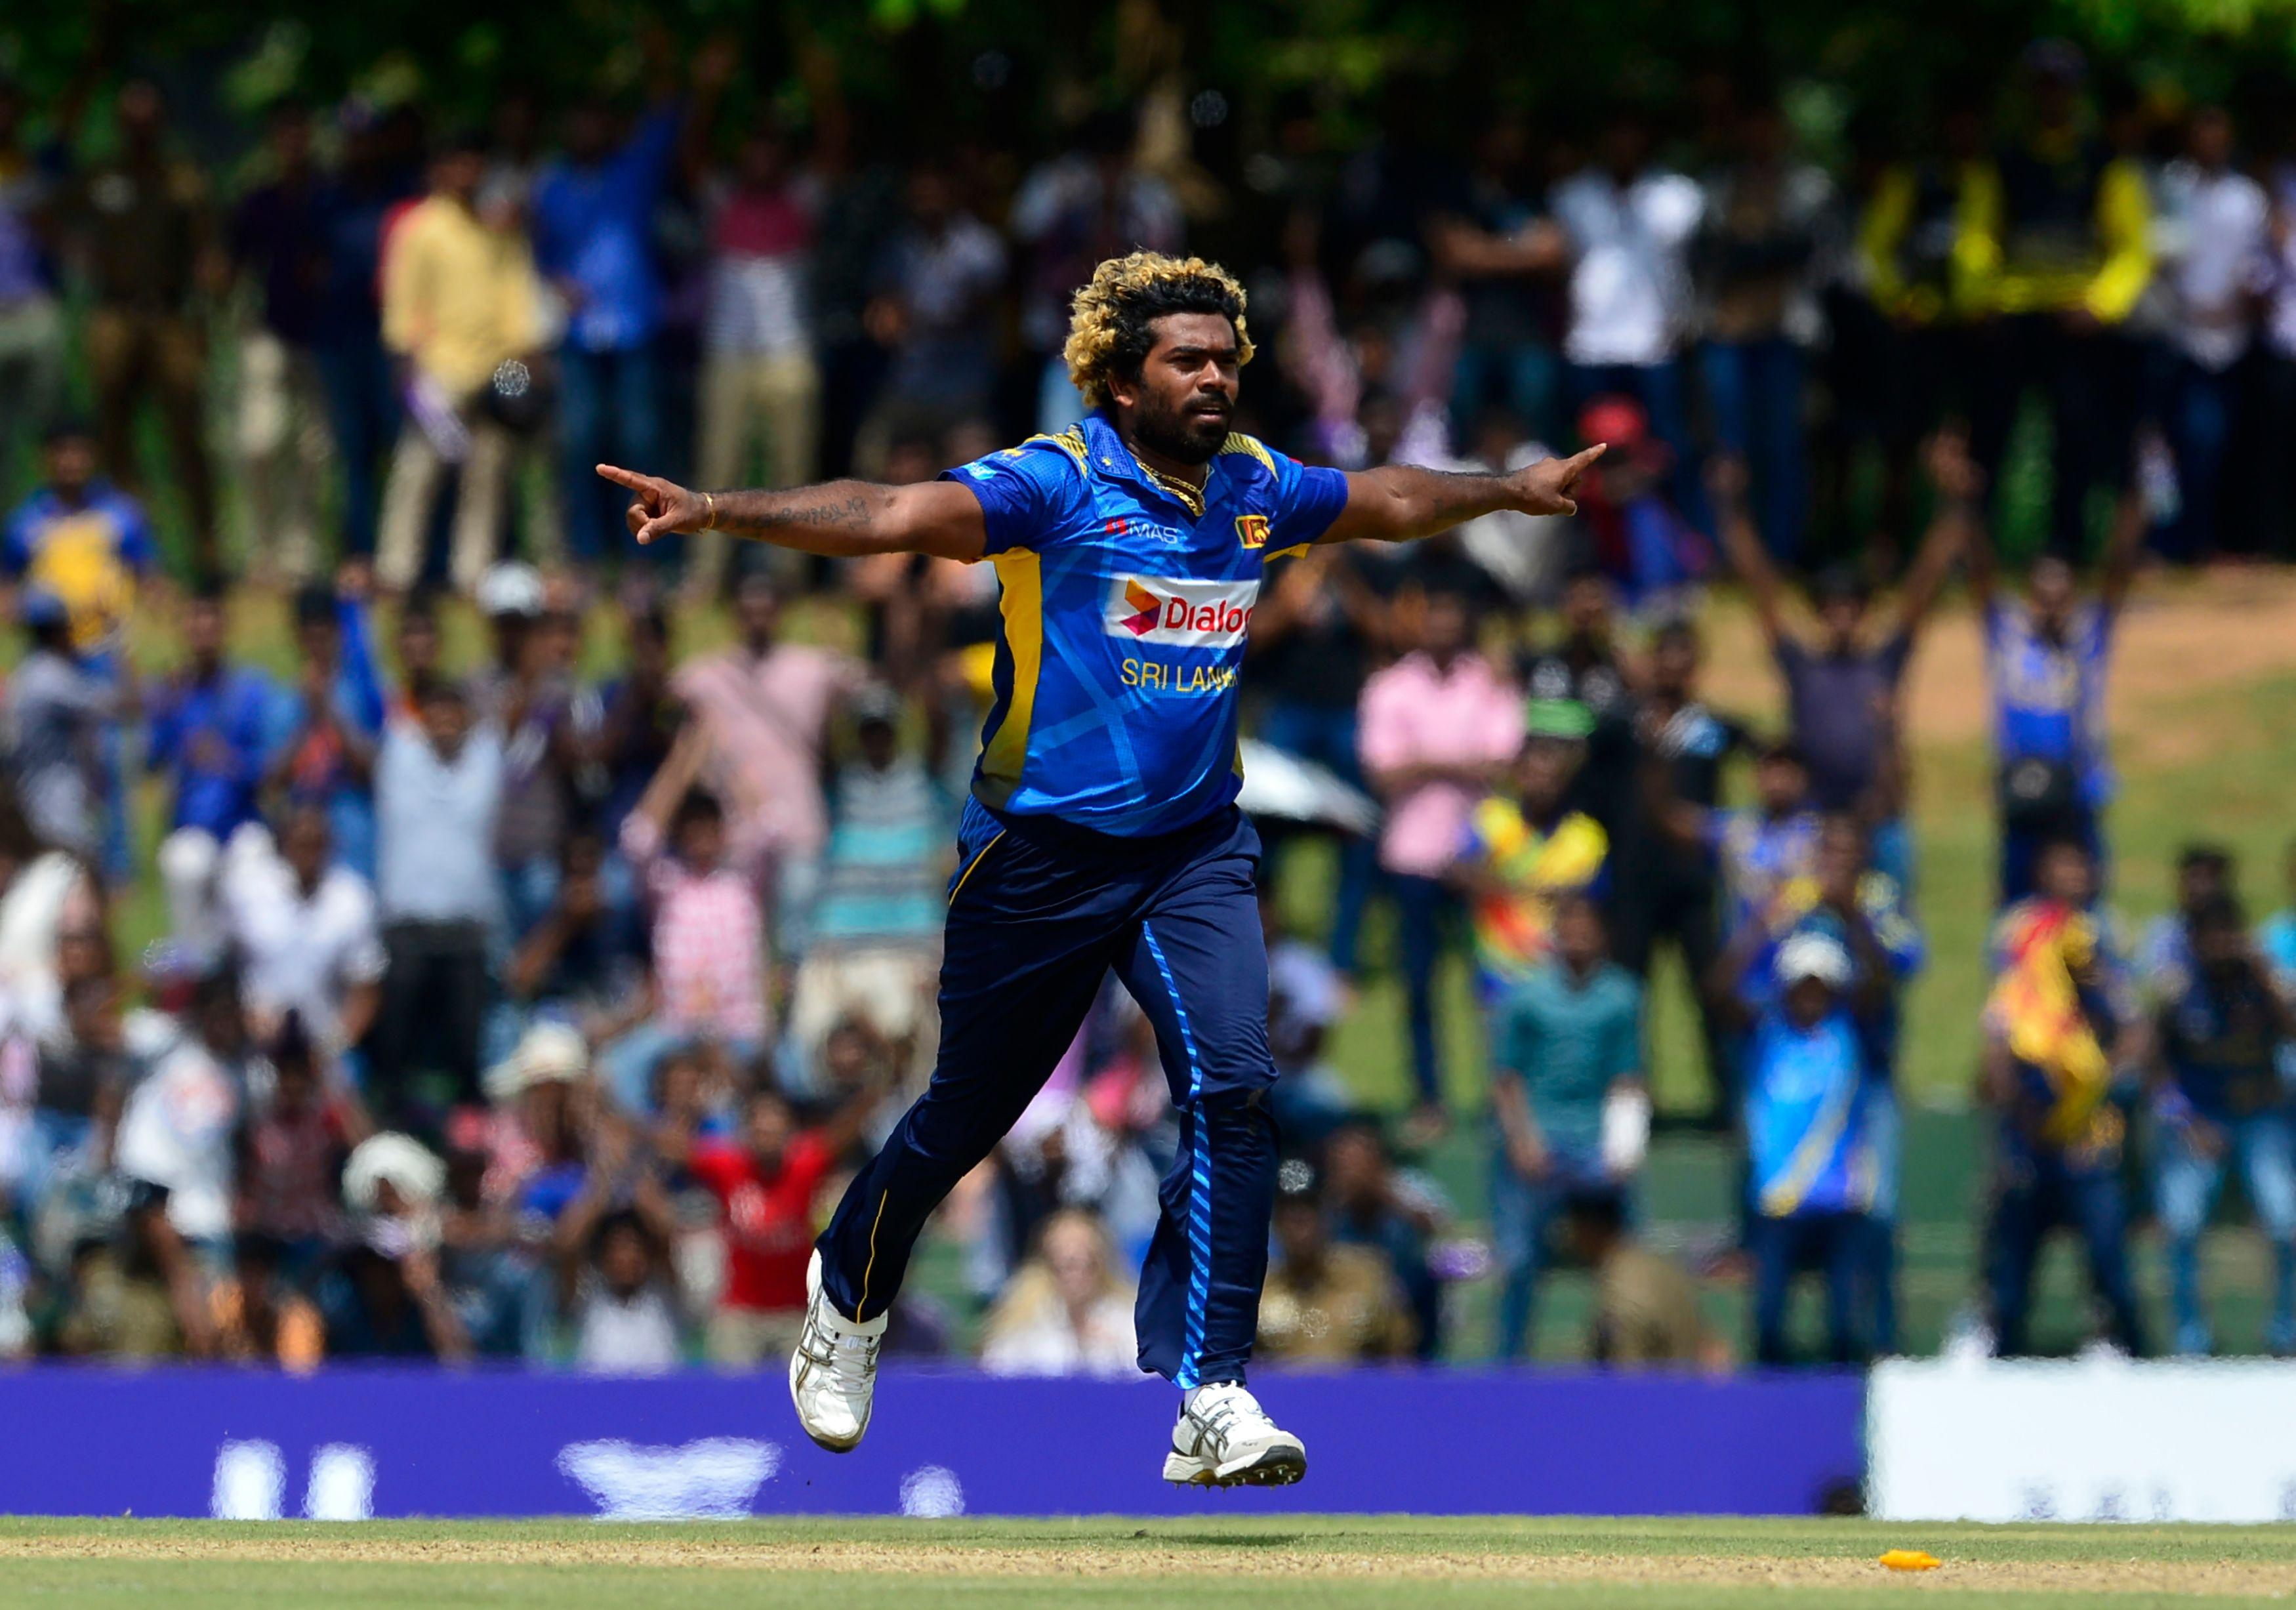 Lasith Malinga claimed five wickets for Sri Lanka in ten overs against England